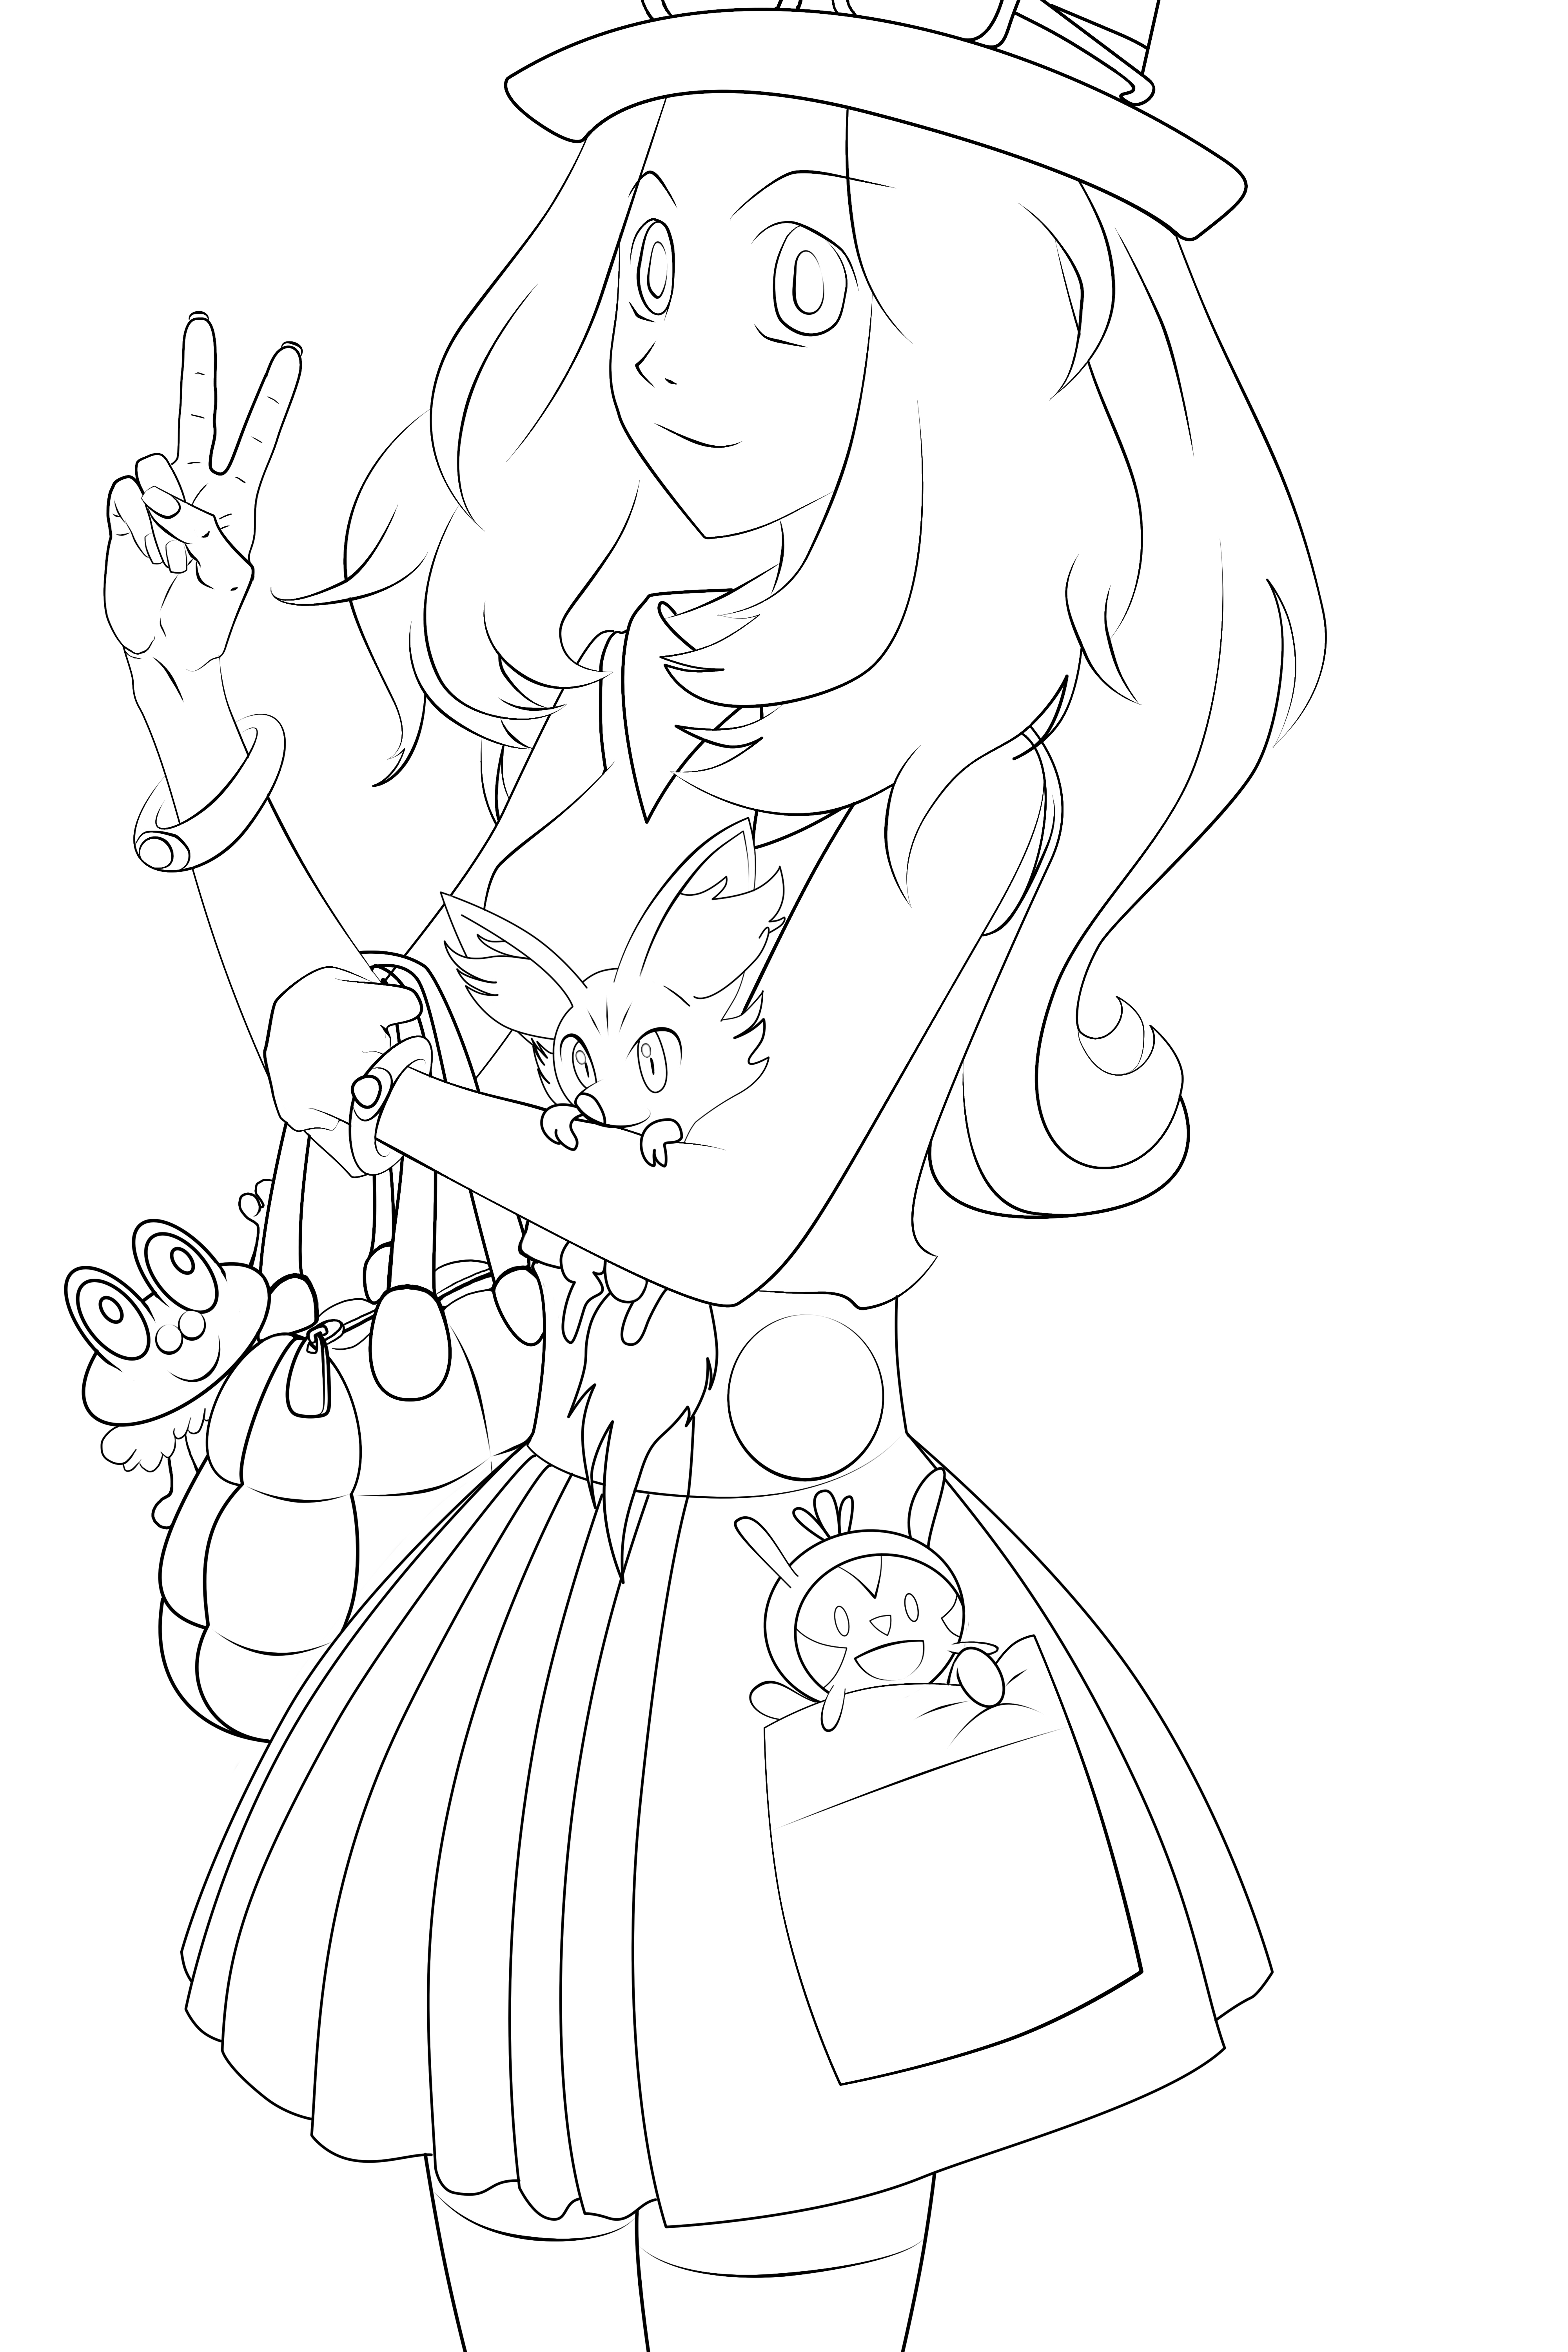 Serena Pokemon Xy Lineart By Kirakam On Deviantart Coloring Pages Xy